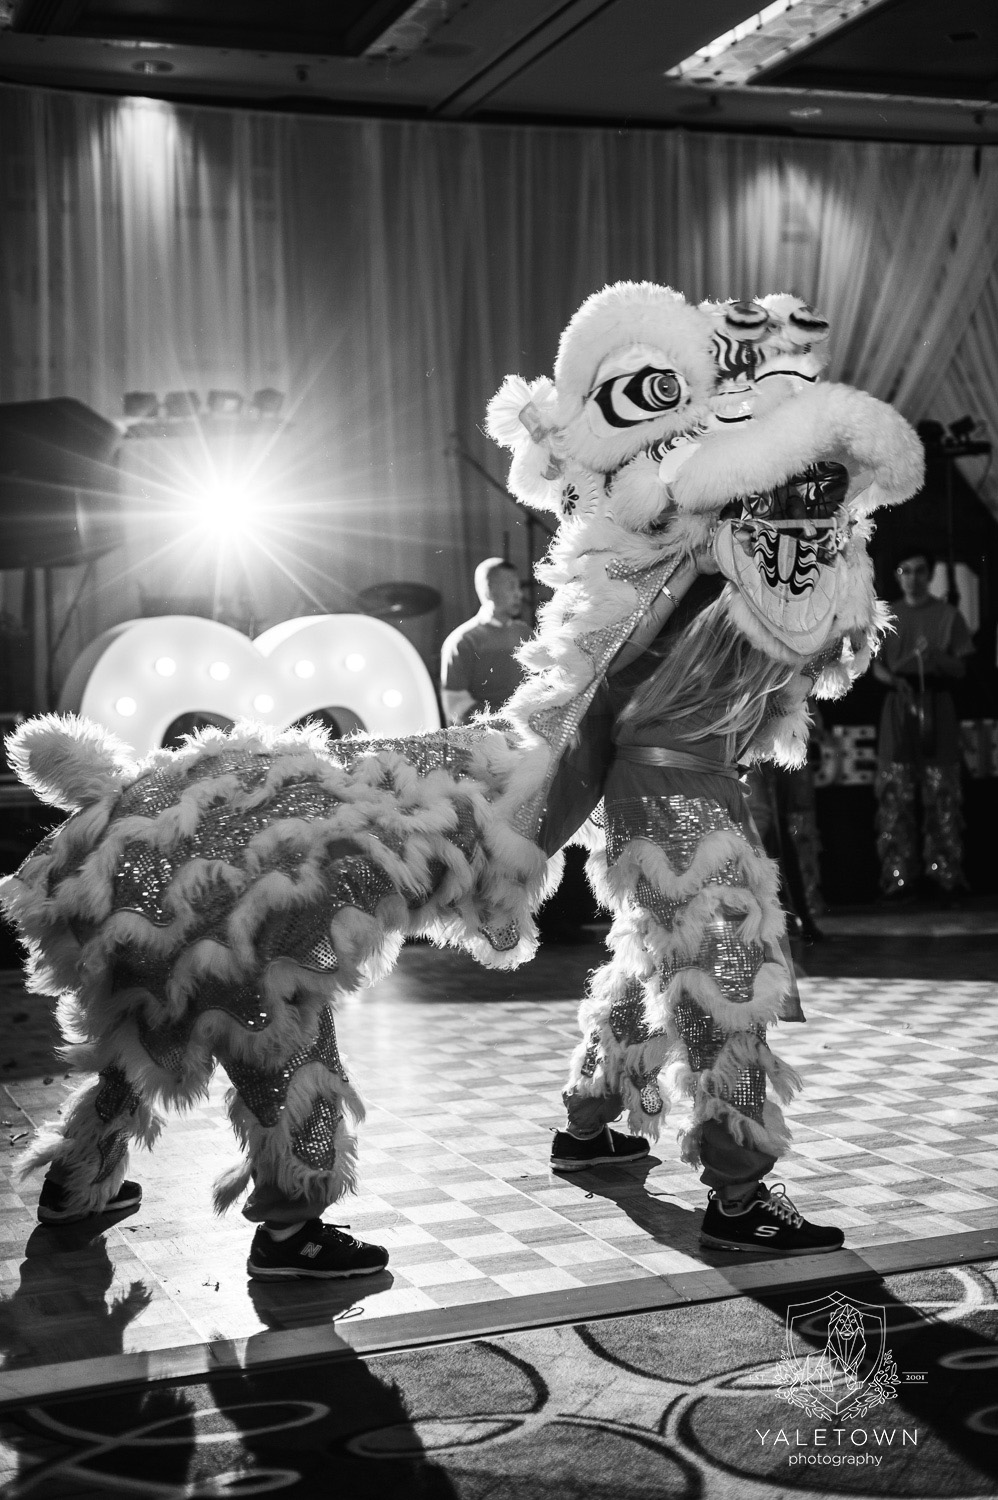 chinese-lion-dance-four-seasons-hotel-vancouver-wedding-yaletown-photography-photo-40.JPG